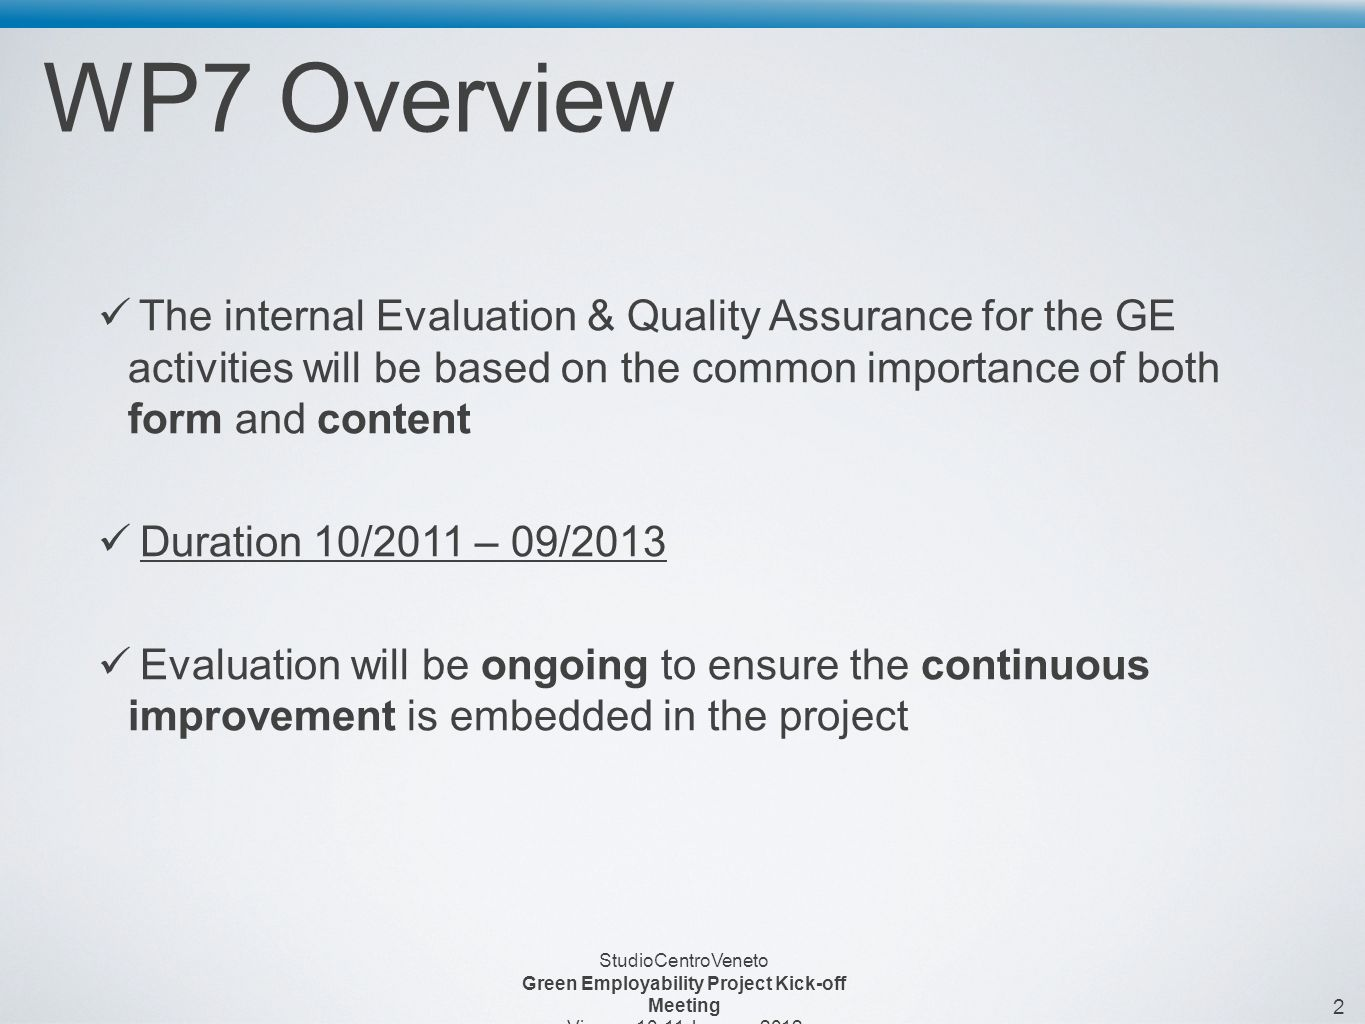 2 StudioCentroVeneto Green Employability Project Kick-off Meeting Vienna, 10-11 January 2012 WP7 Overview The internal Evaluation & Quality Assurance